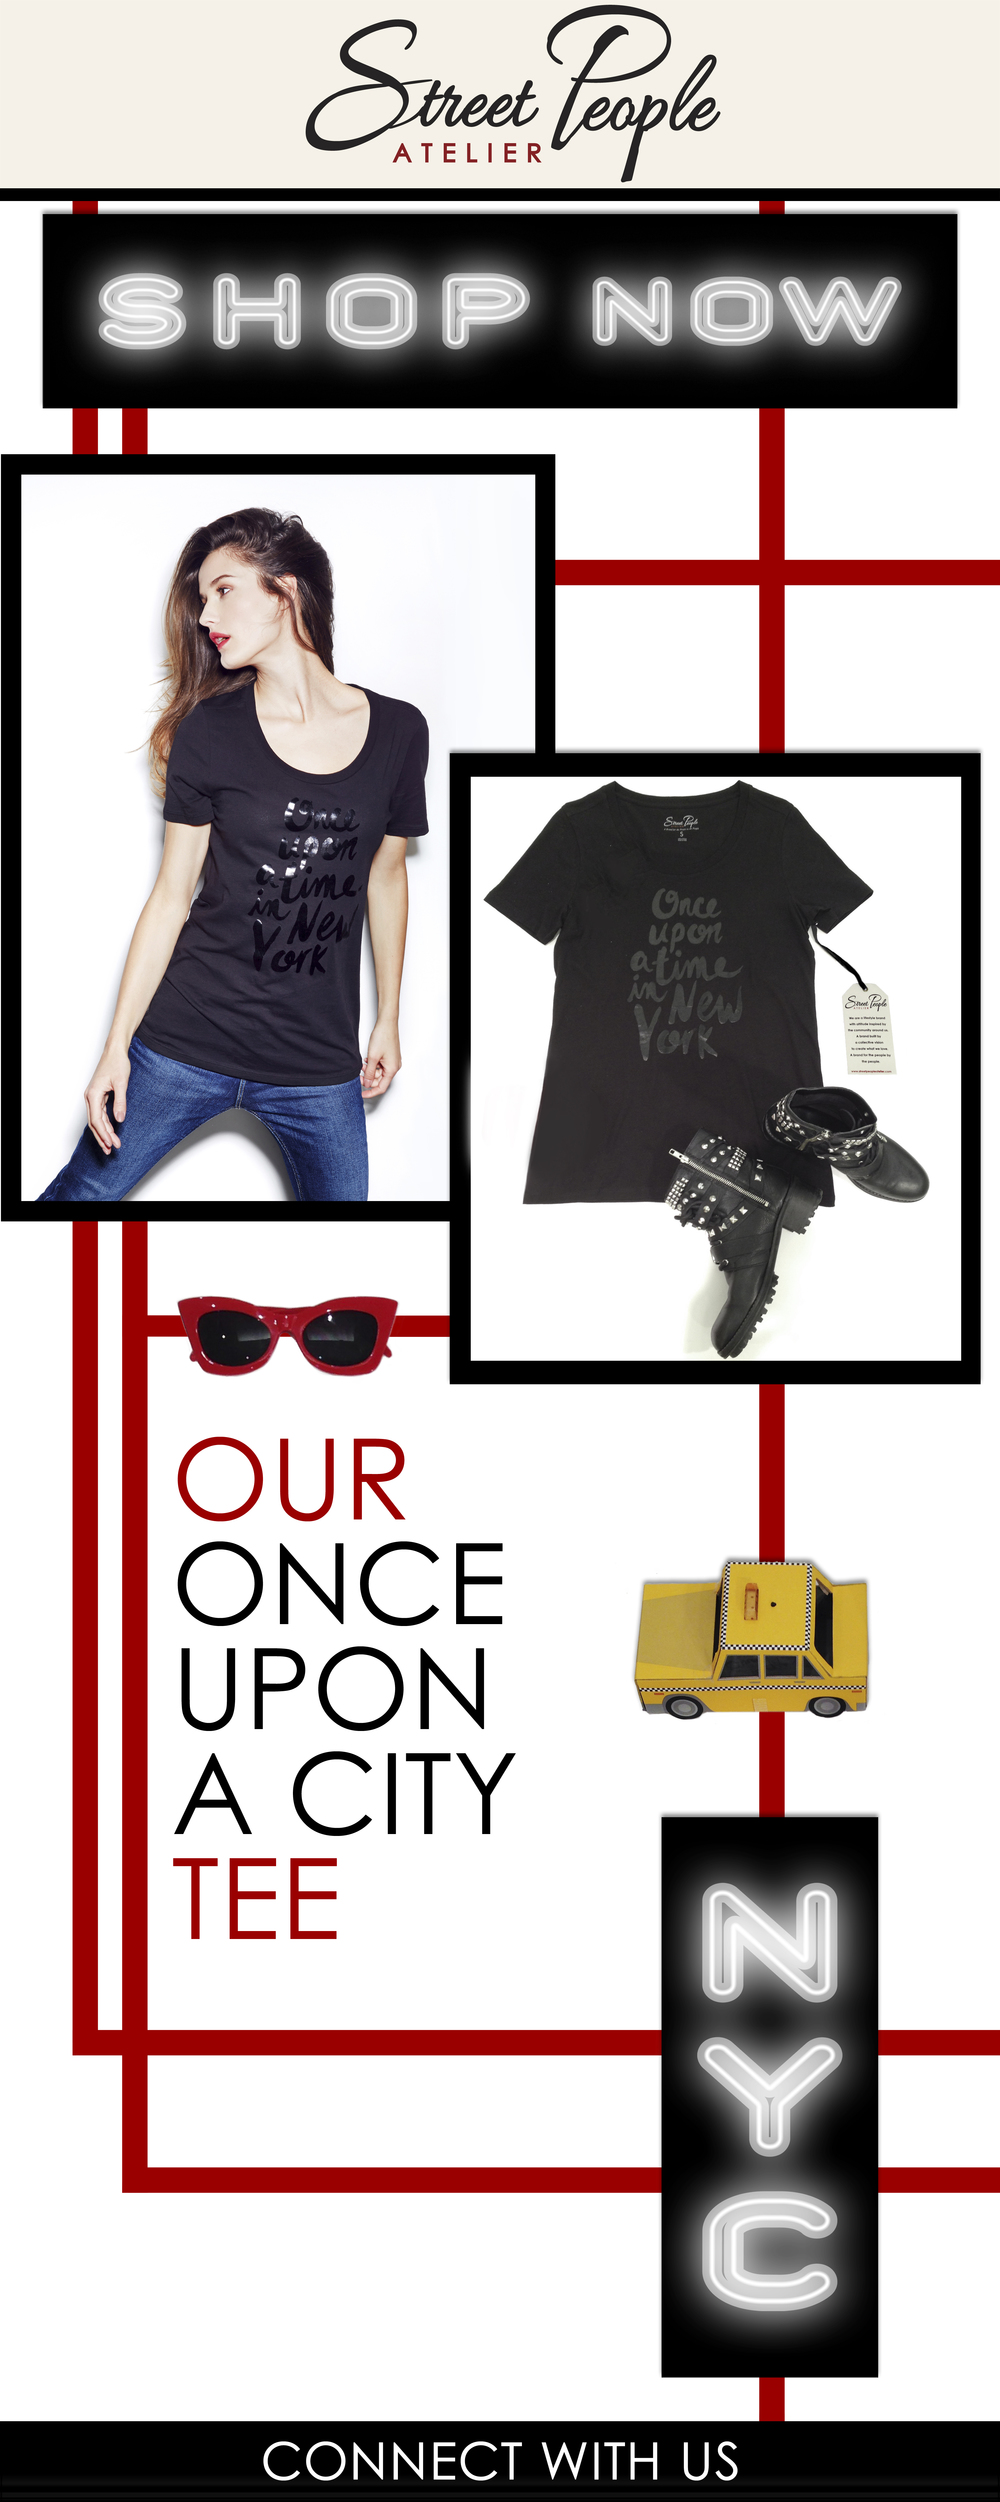 Email: Our Once Upon a City tee geo